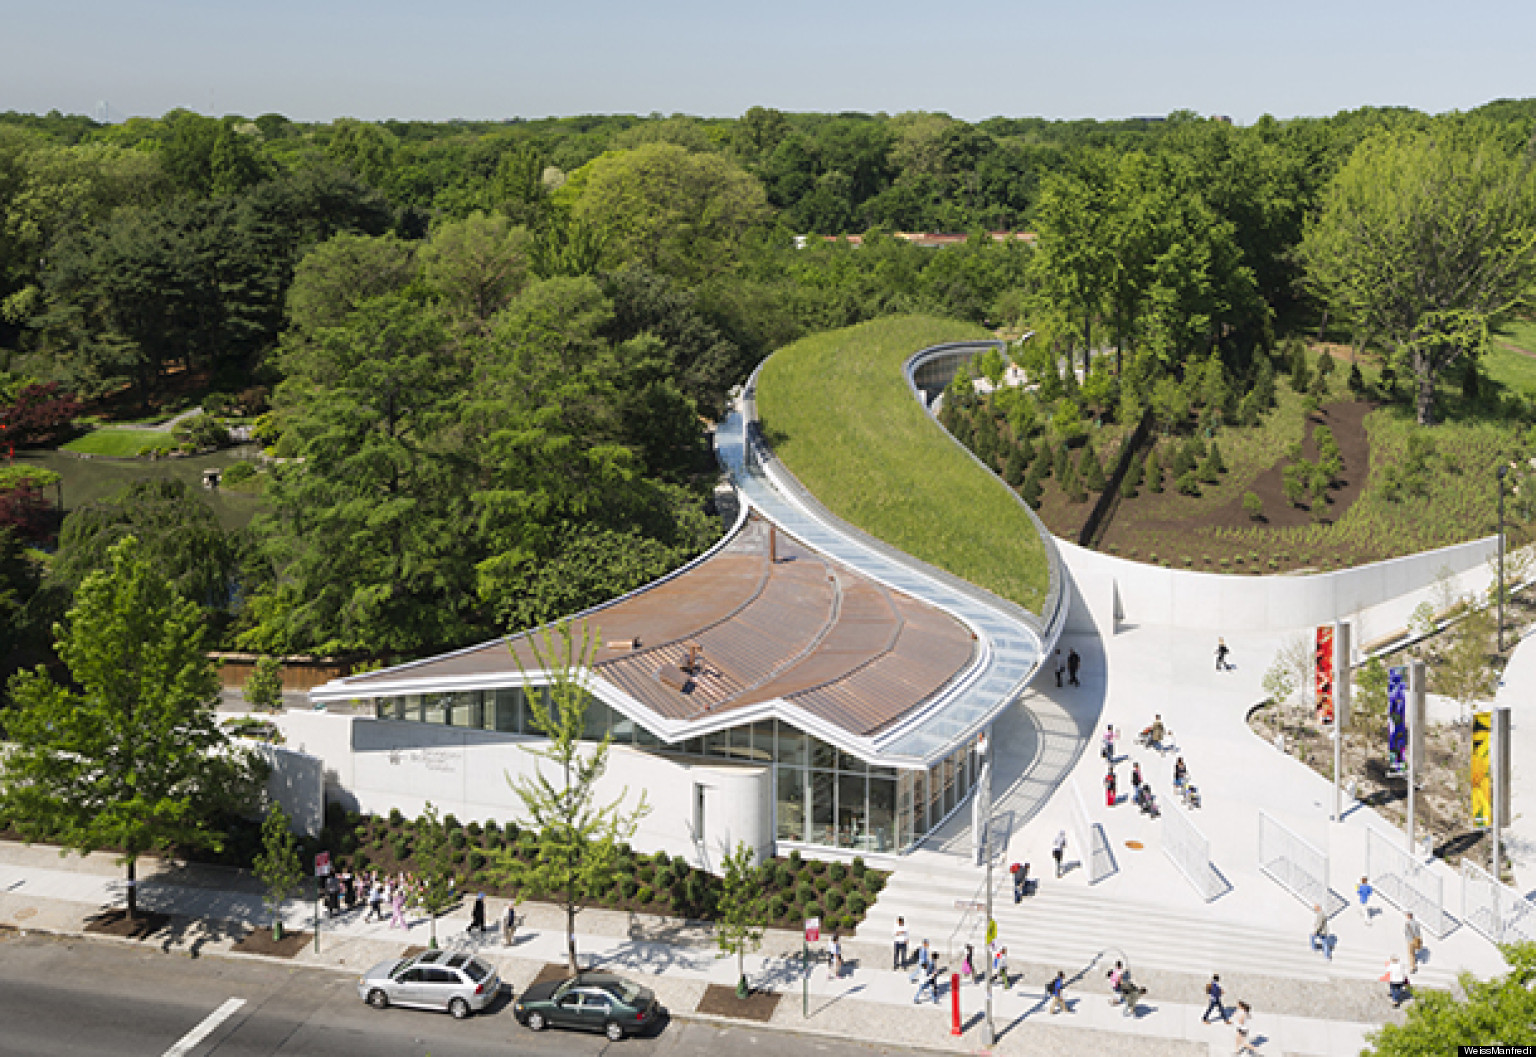 Broadening The Role Of Architects Brooklyn Botanic Garden Visitor Center By Weiss Manfredi